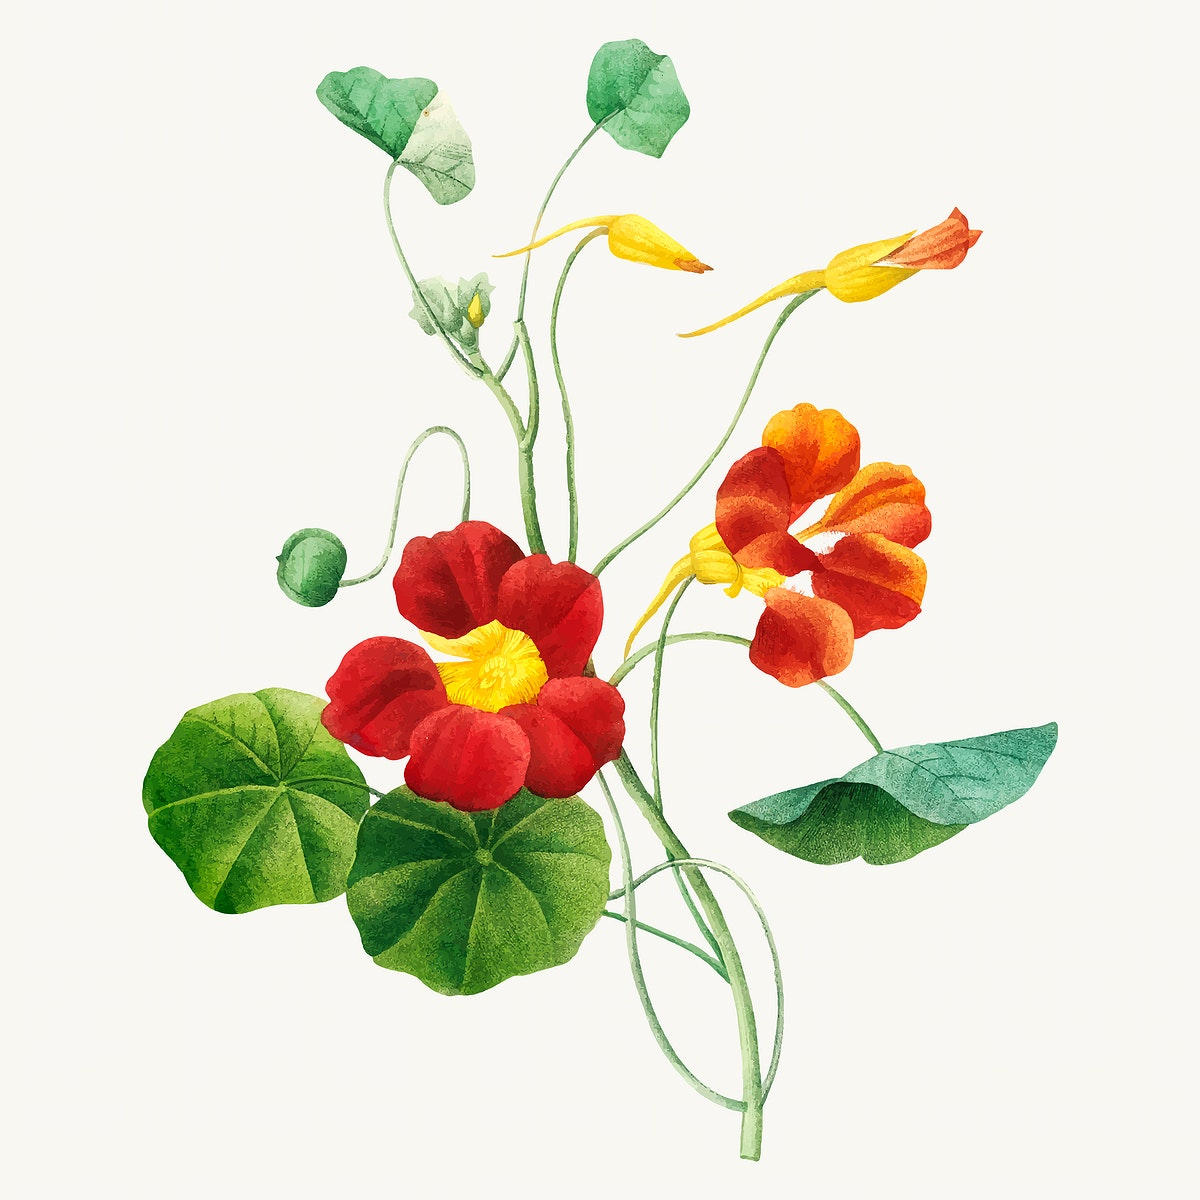 Monk's cress flower botanical vector, remixed from artworks by Pierre-Joseph Redouté